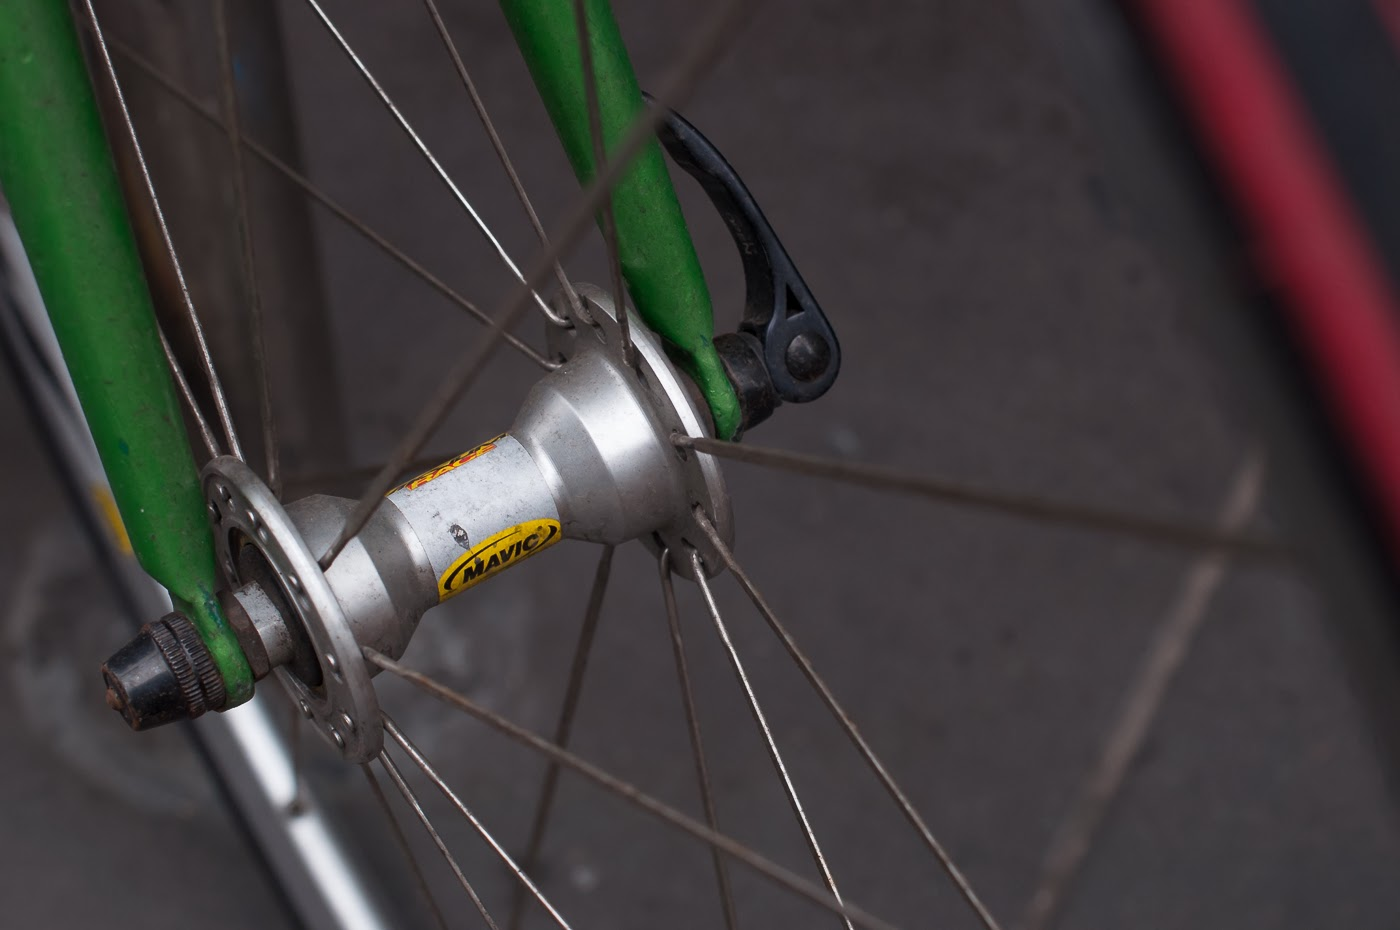 single speed, bike, bicycle, tim macauley, the biketorialist, melbourne, conversion, chain, tensioner road bik, mavic, front, hub, wheel, radial spoking